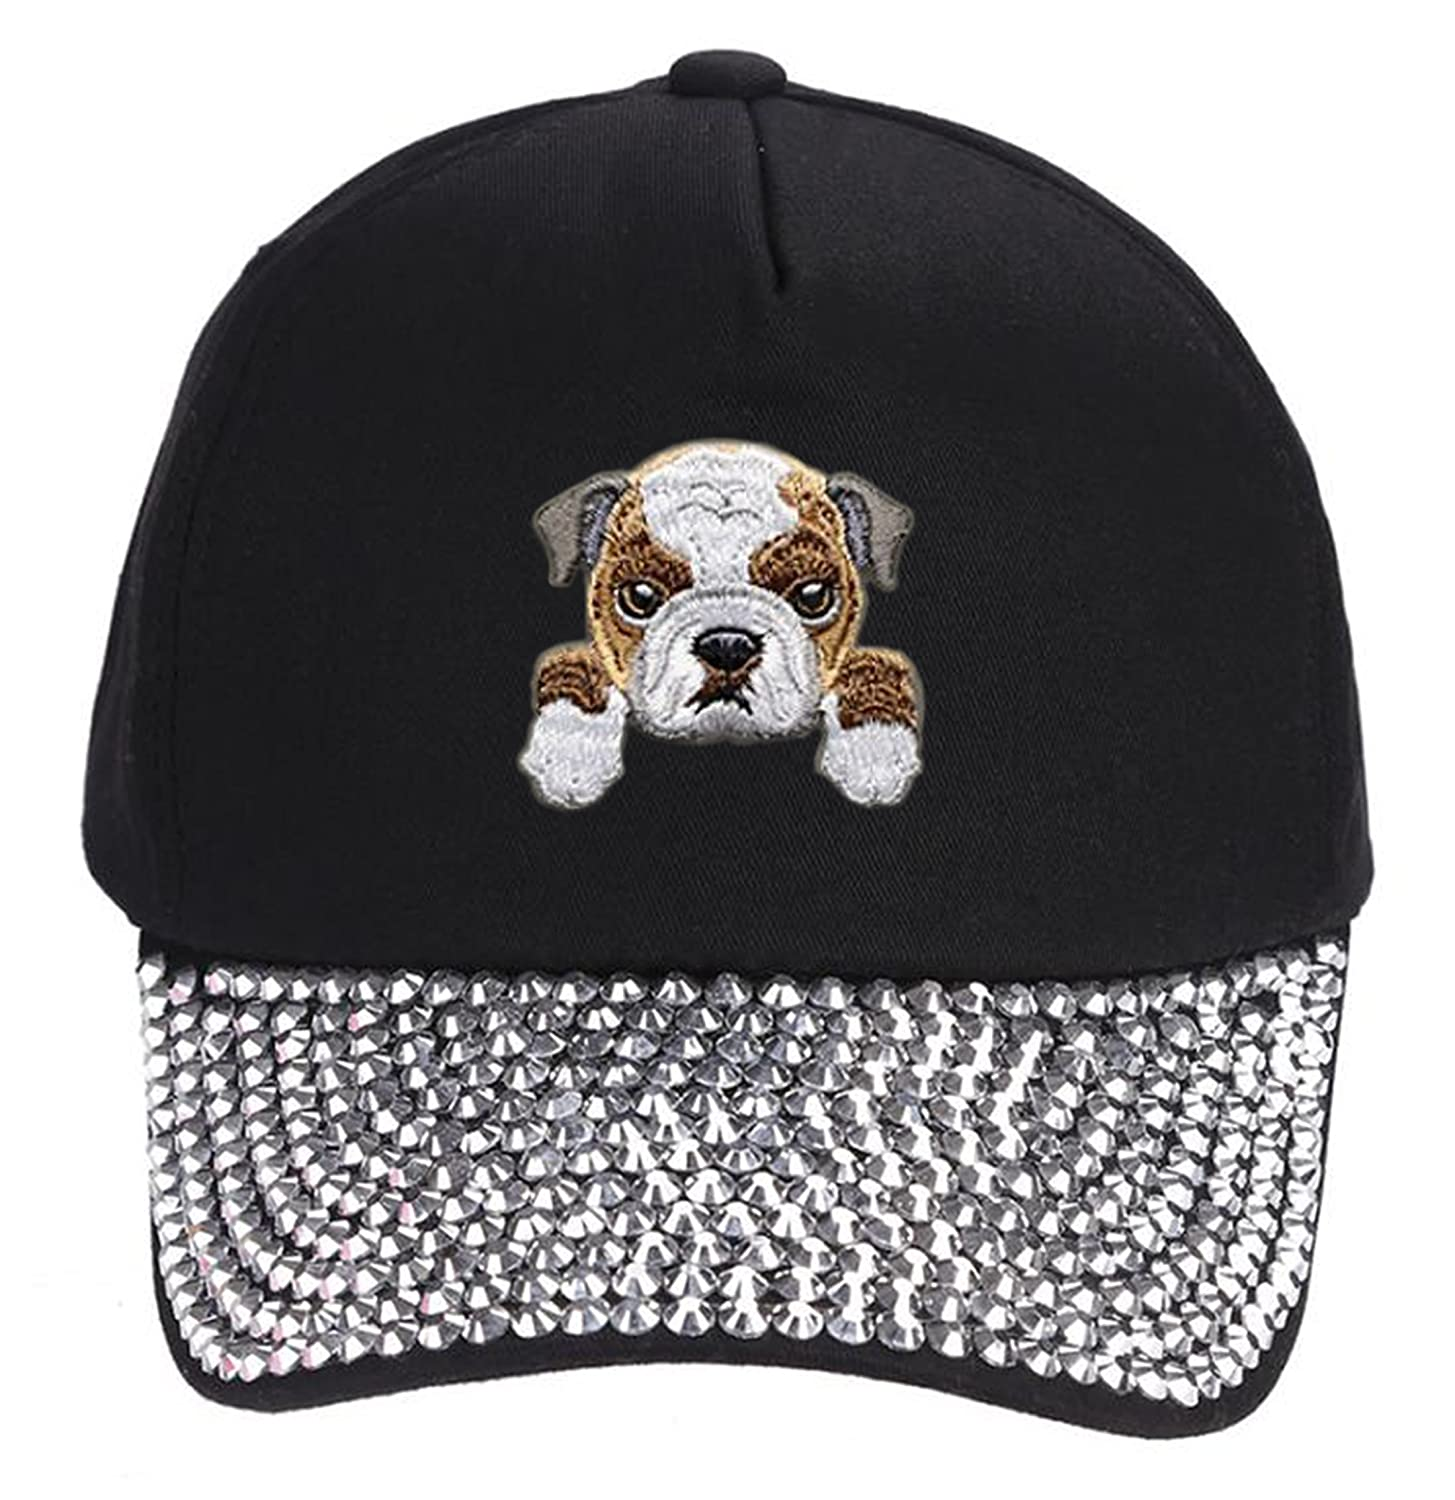 Amazon.com  Bulldog Hat Cute Puppy Dog Face Snapback Cap (Black)  Clothing 7599bc87ff8